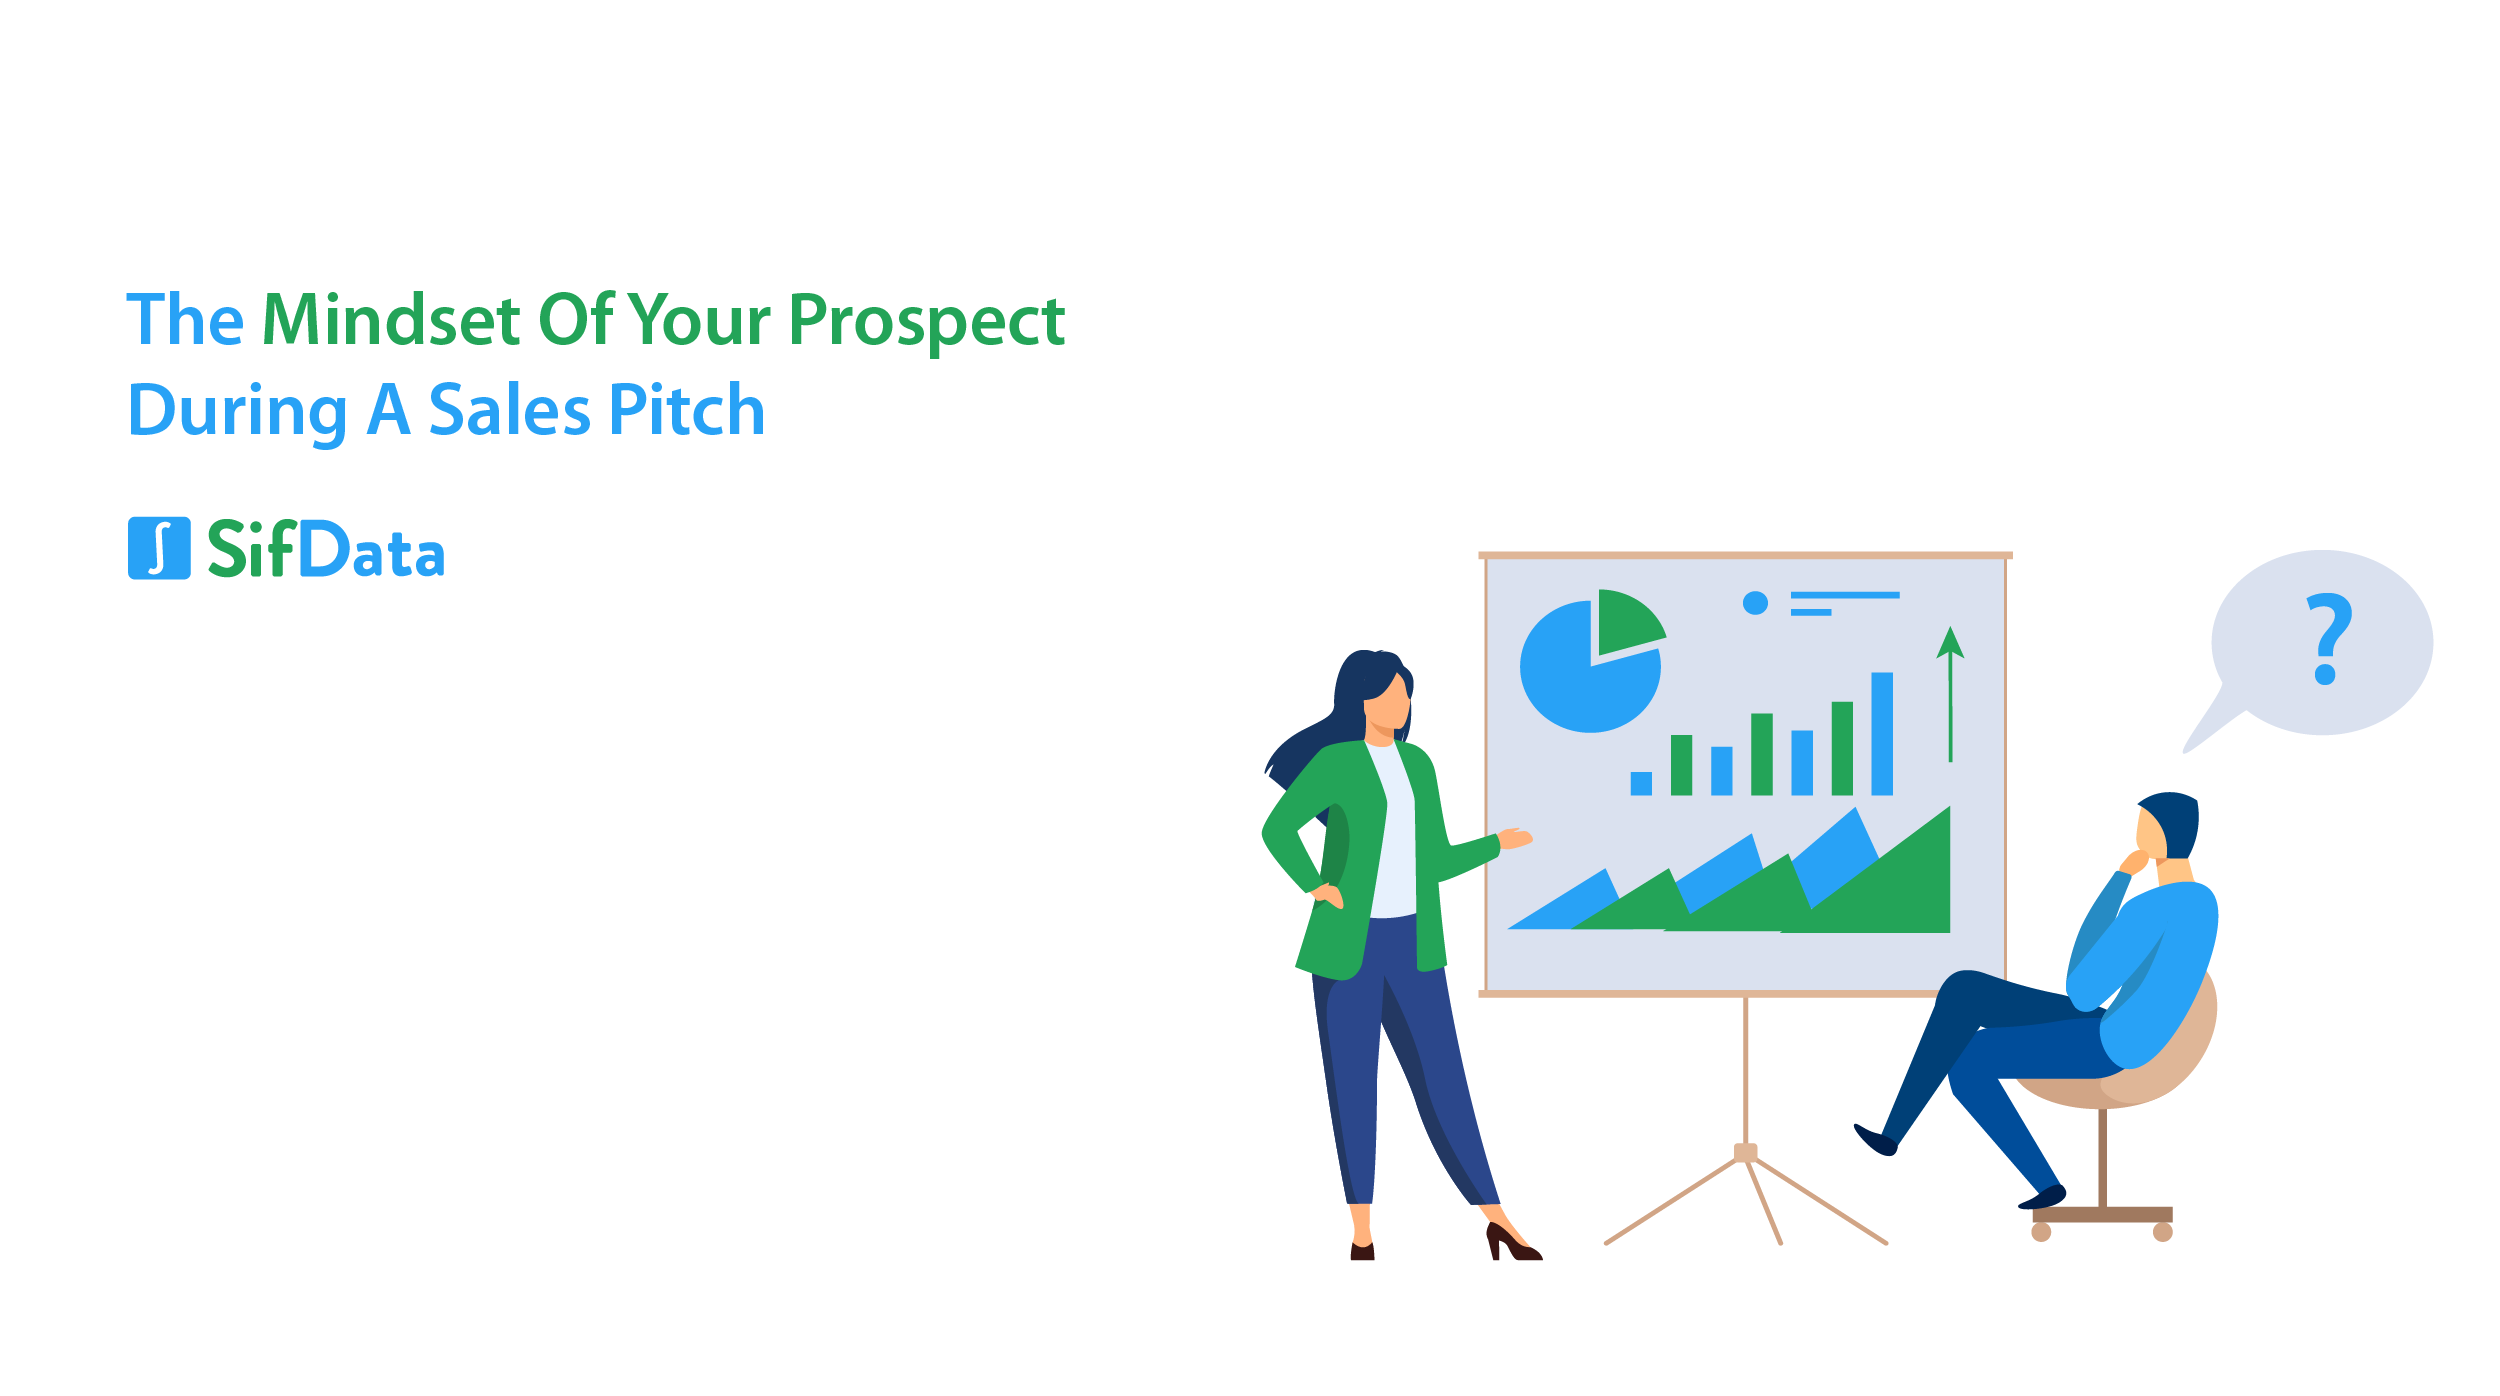 THE MINDSET OF YOUR PROSPECT DURING A SALES PITCH